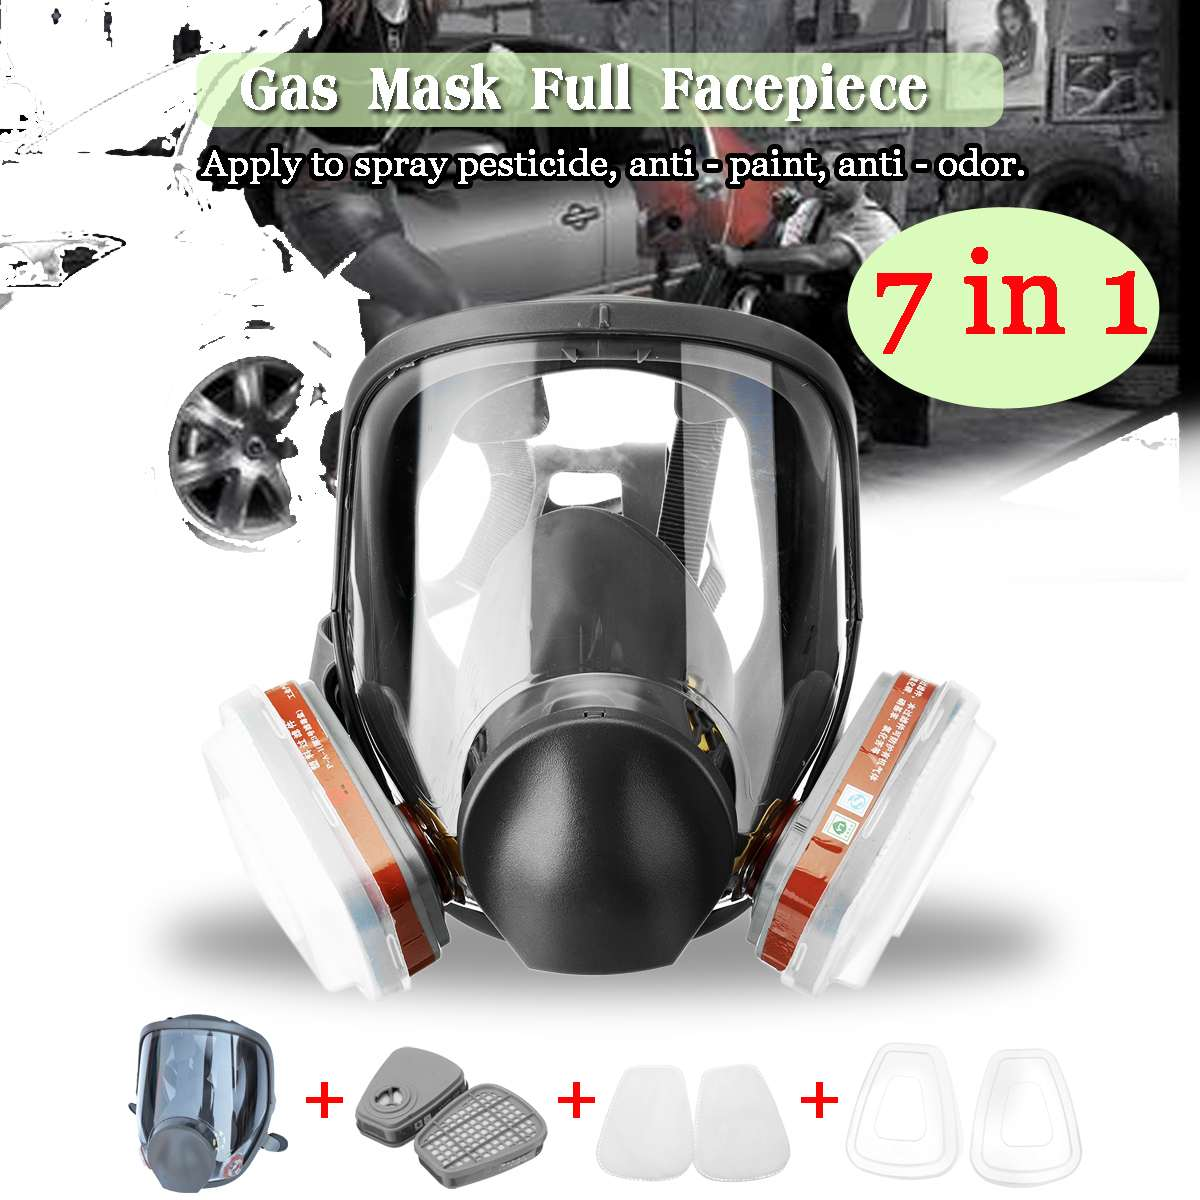 Automatic Filter Gas Mask Filters full Face  Respirator Safety Protective Mask Anti Dust Anti Organic PM 2.5 FogAutomatic Filter Gas Mask Filters full Face  Respirator Safety Protective Mask Anti Dust Anti Organic PM 2.5 Fog